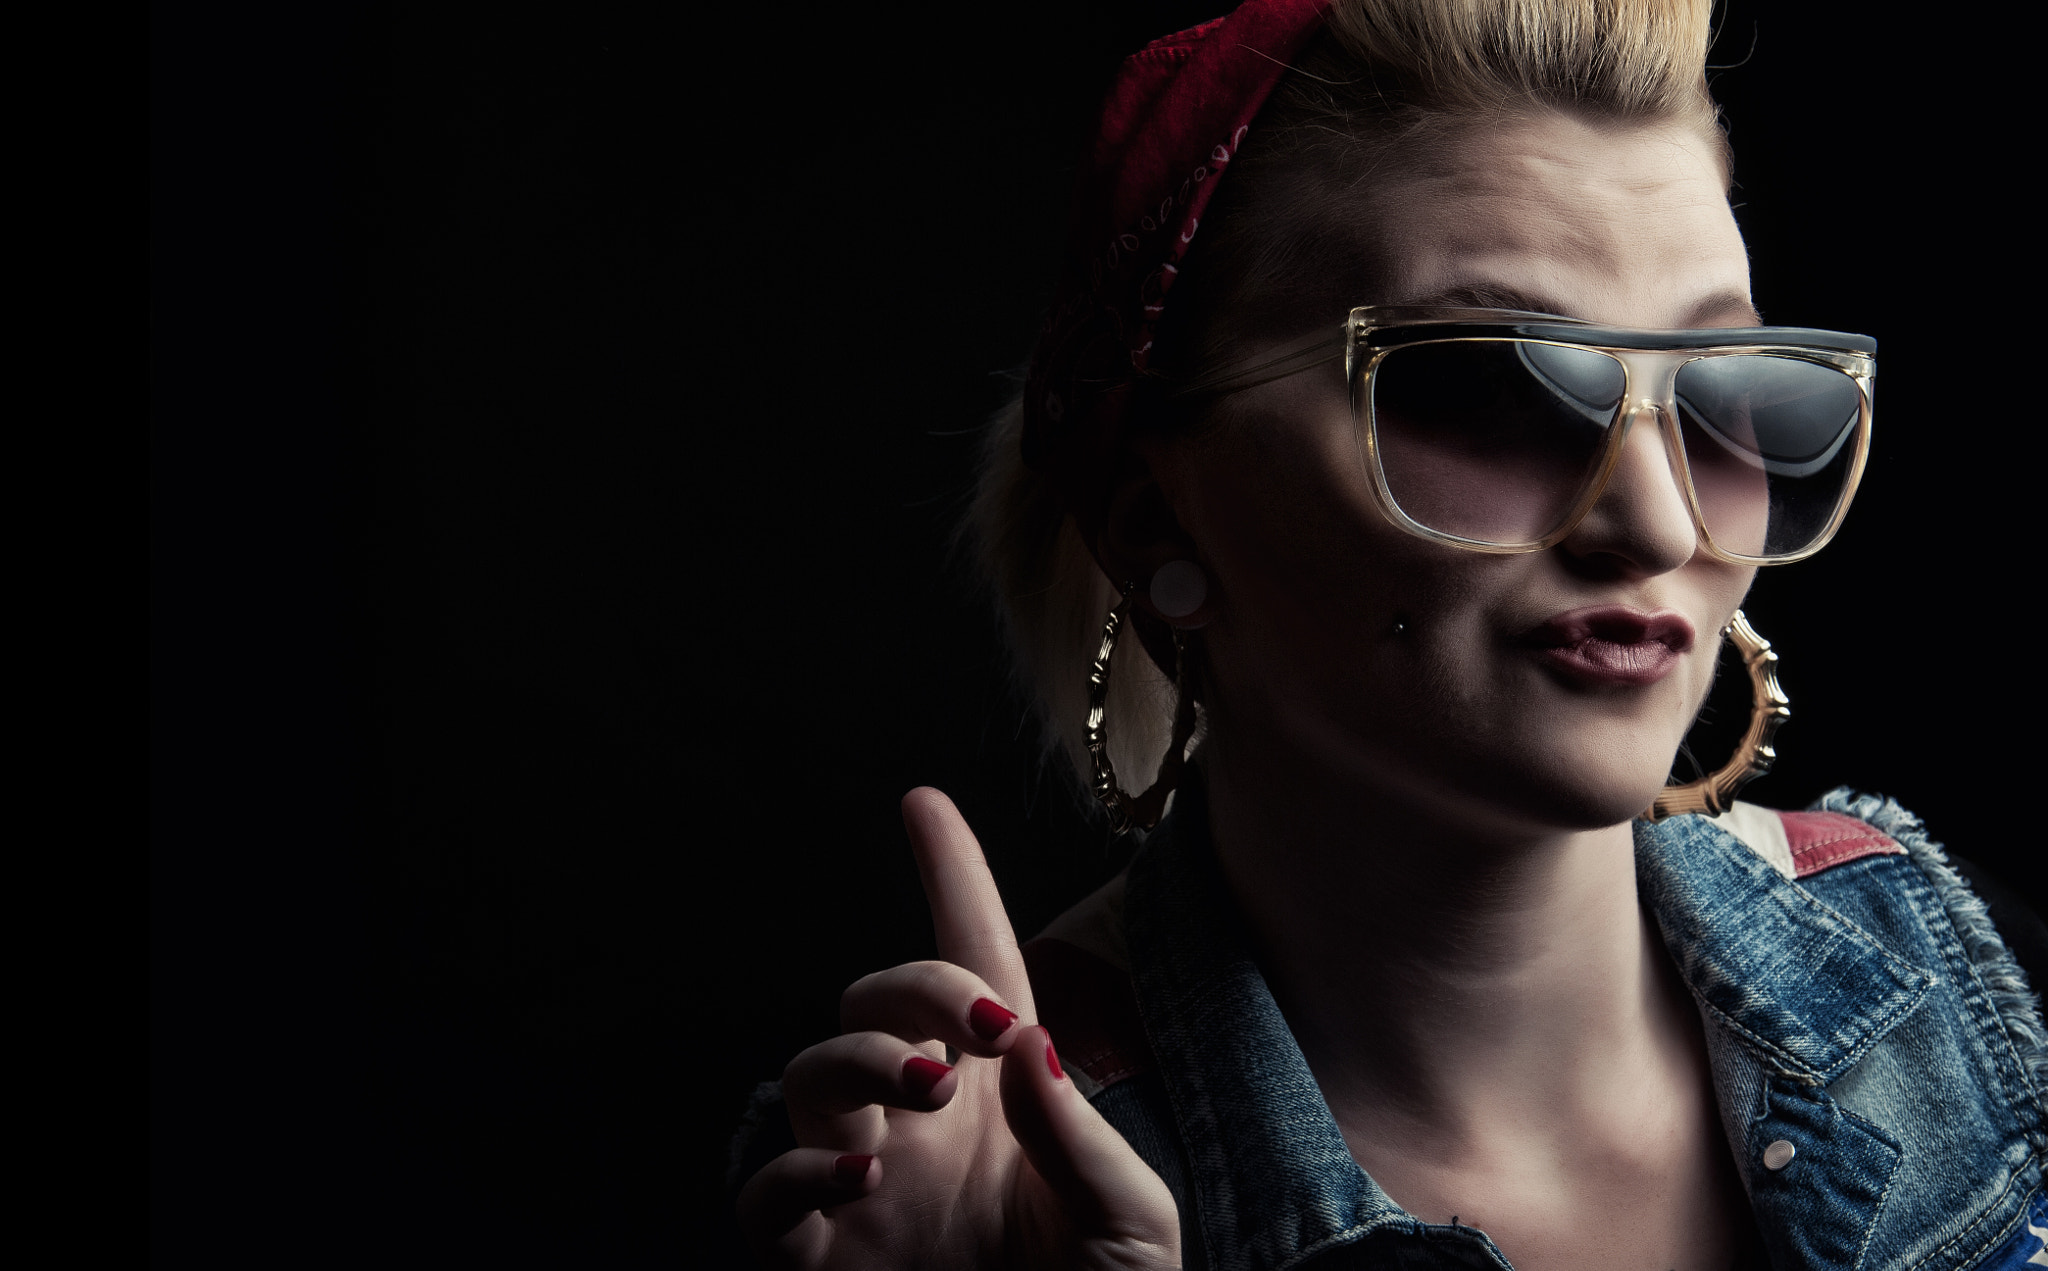 Photograph hollaback girl  by Robert Thompson on 500px